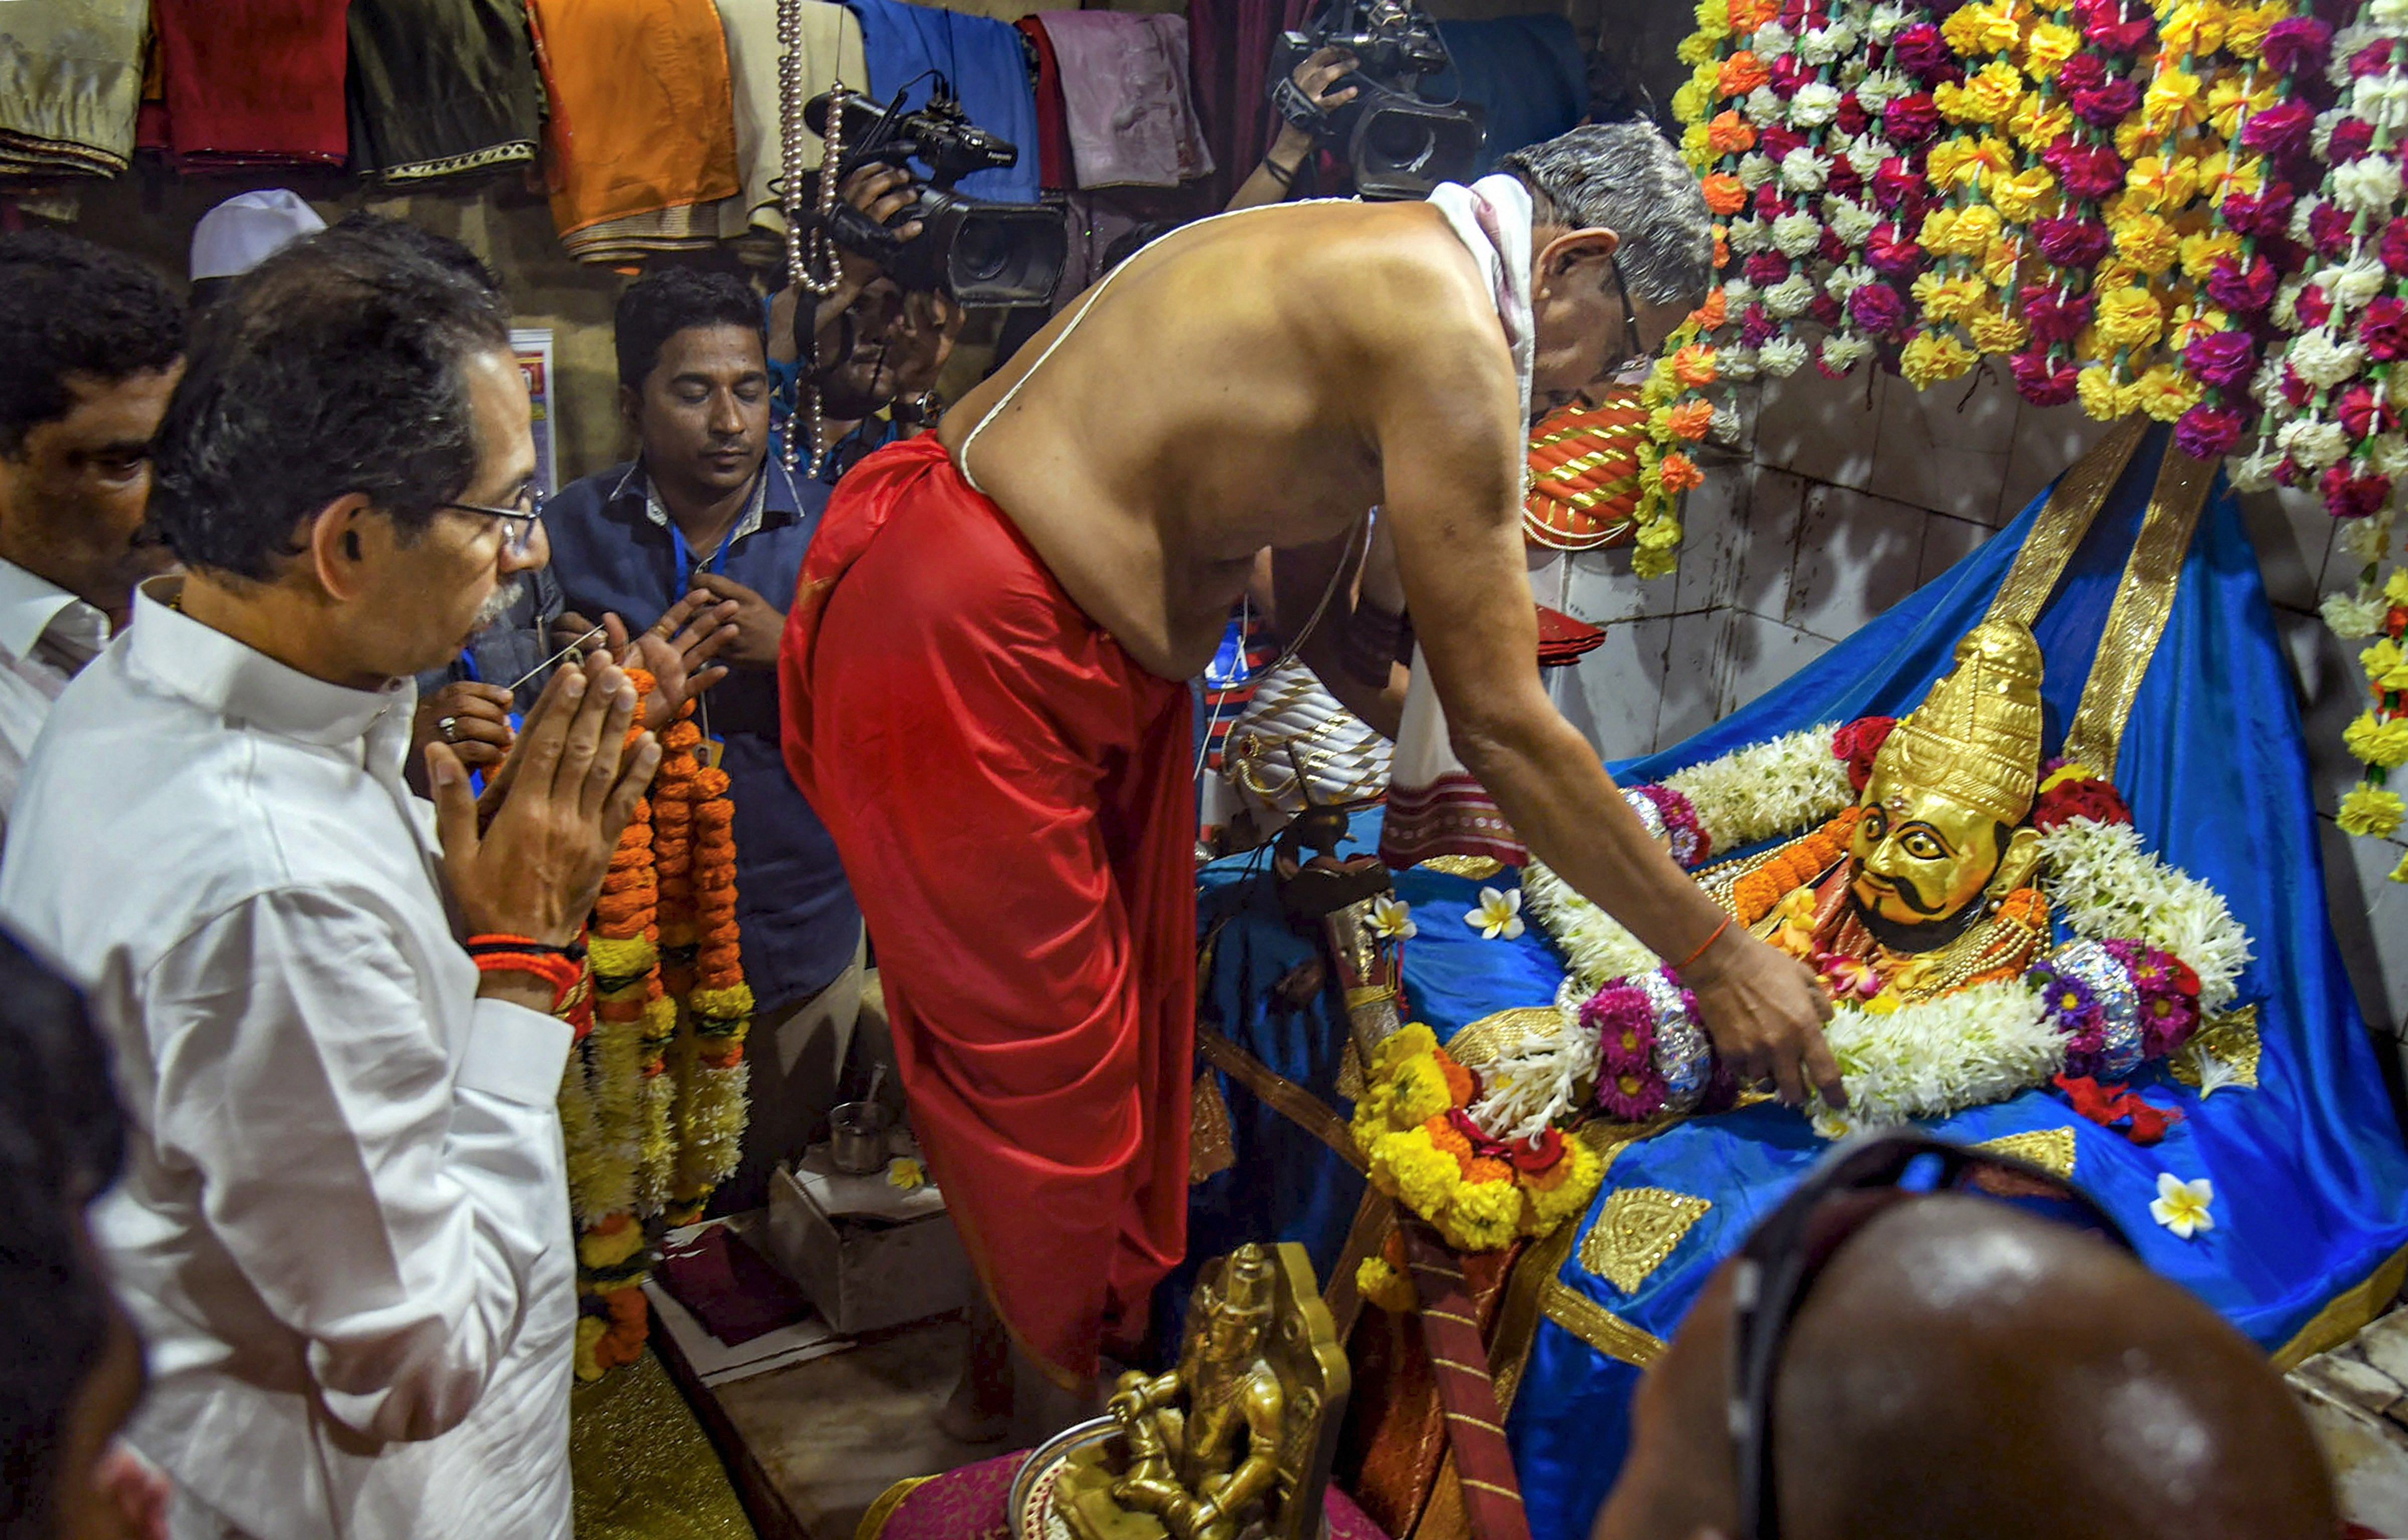 Maharashtra chief minister Uddhav Thackeray pays obeisance to Shivaji at a temple inside Sindhudurg fort at Malvan of Sindhudurg district, Tuesday, February 18, 2020